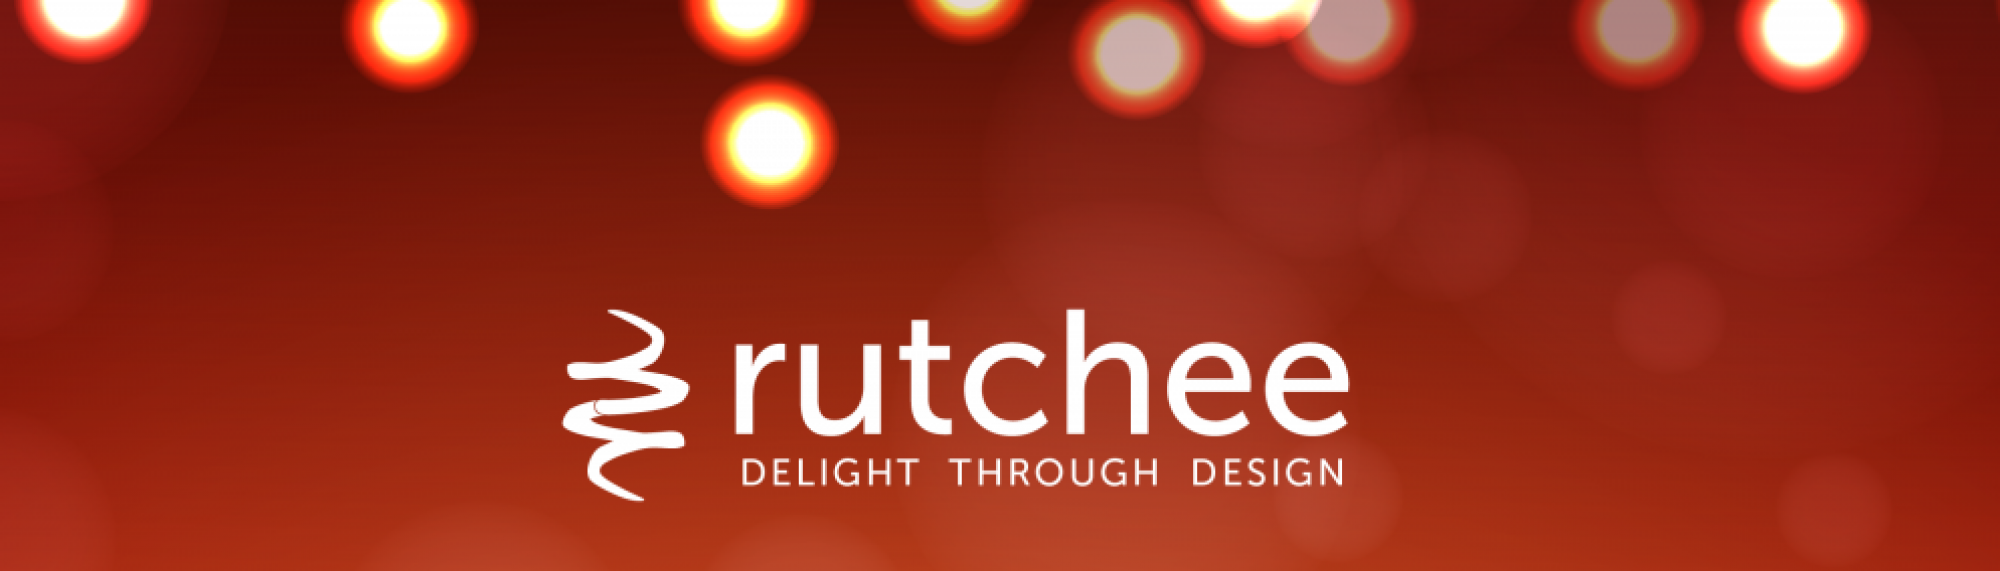 Rutchee | Delight Through Design